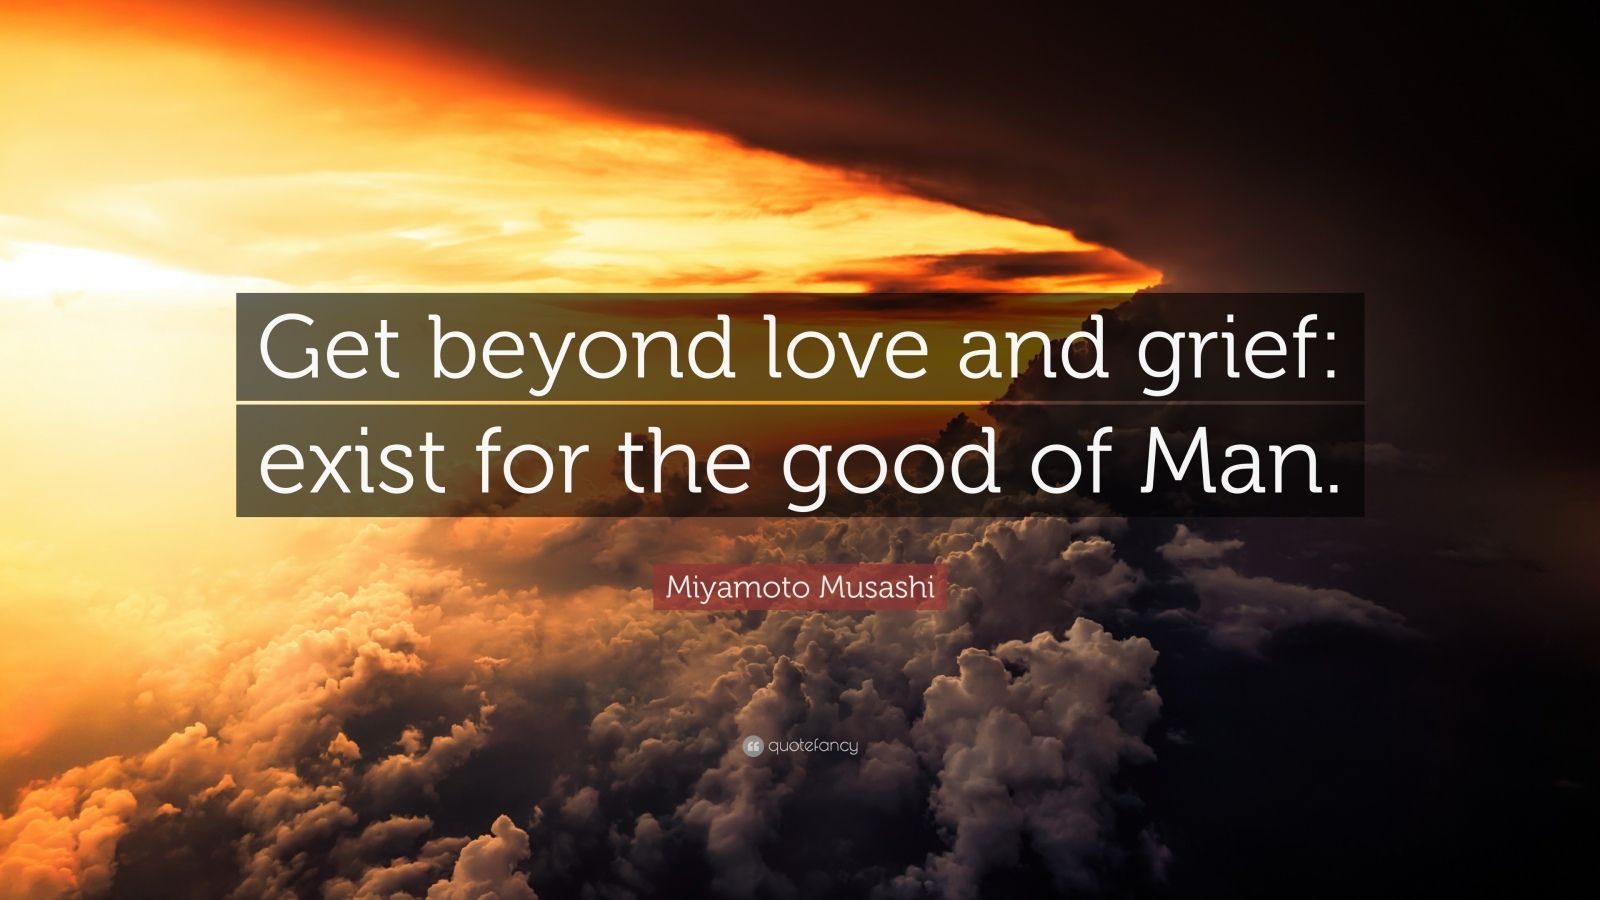 """Miyamoto Musashi Quote: """"Get beyond love and grief: exist for the good of Man."""""""